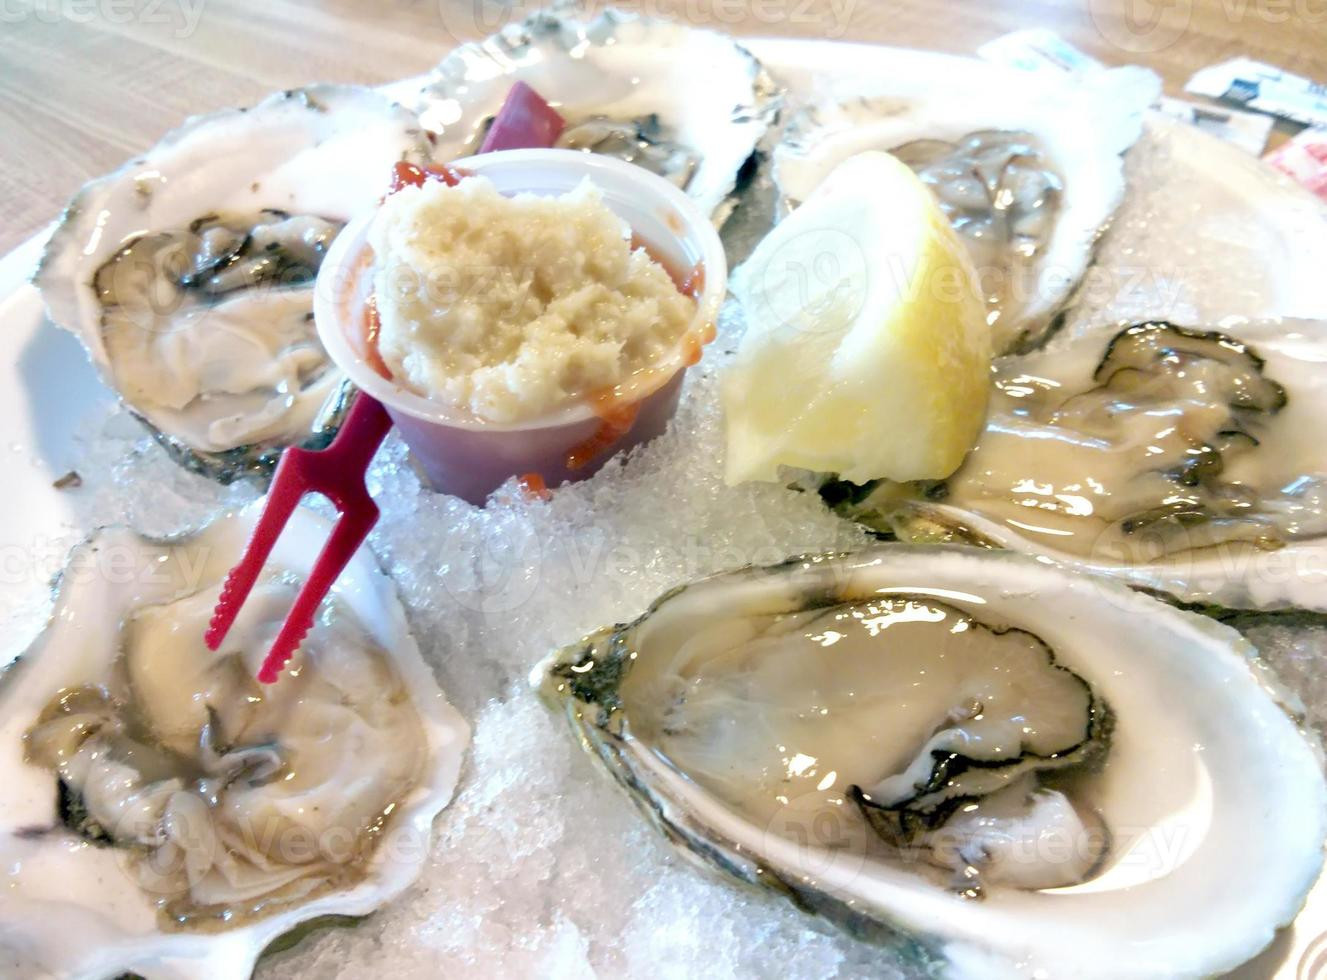 Oysters on the half shell photo